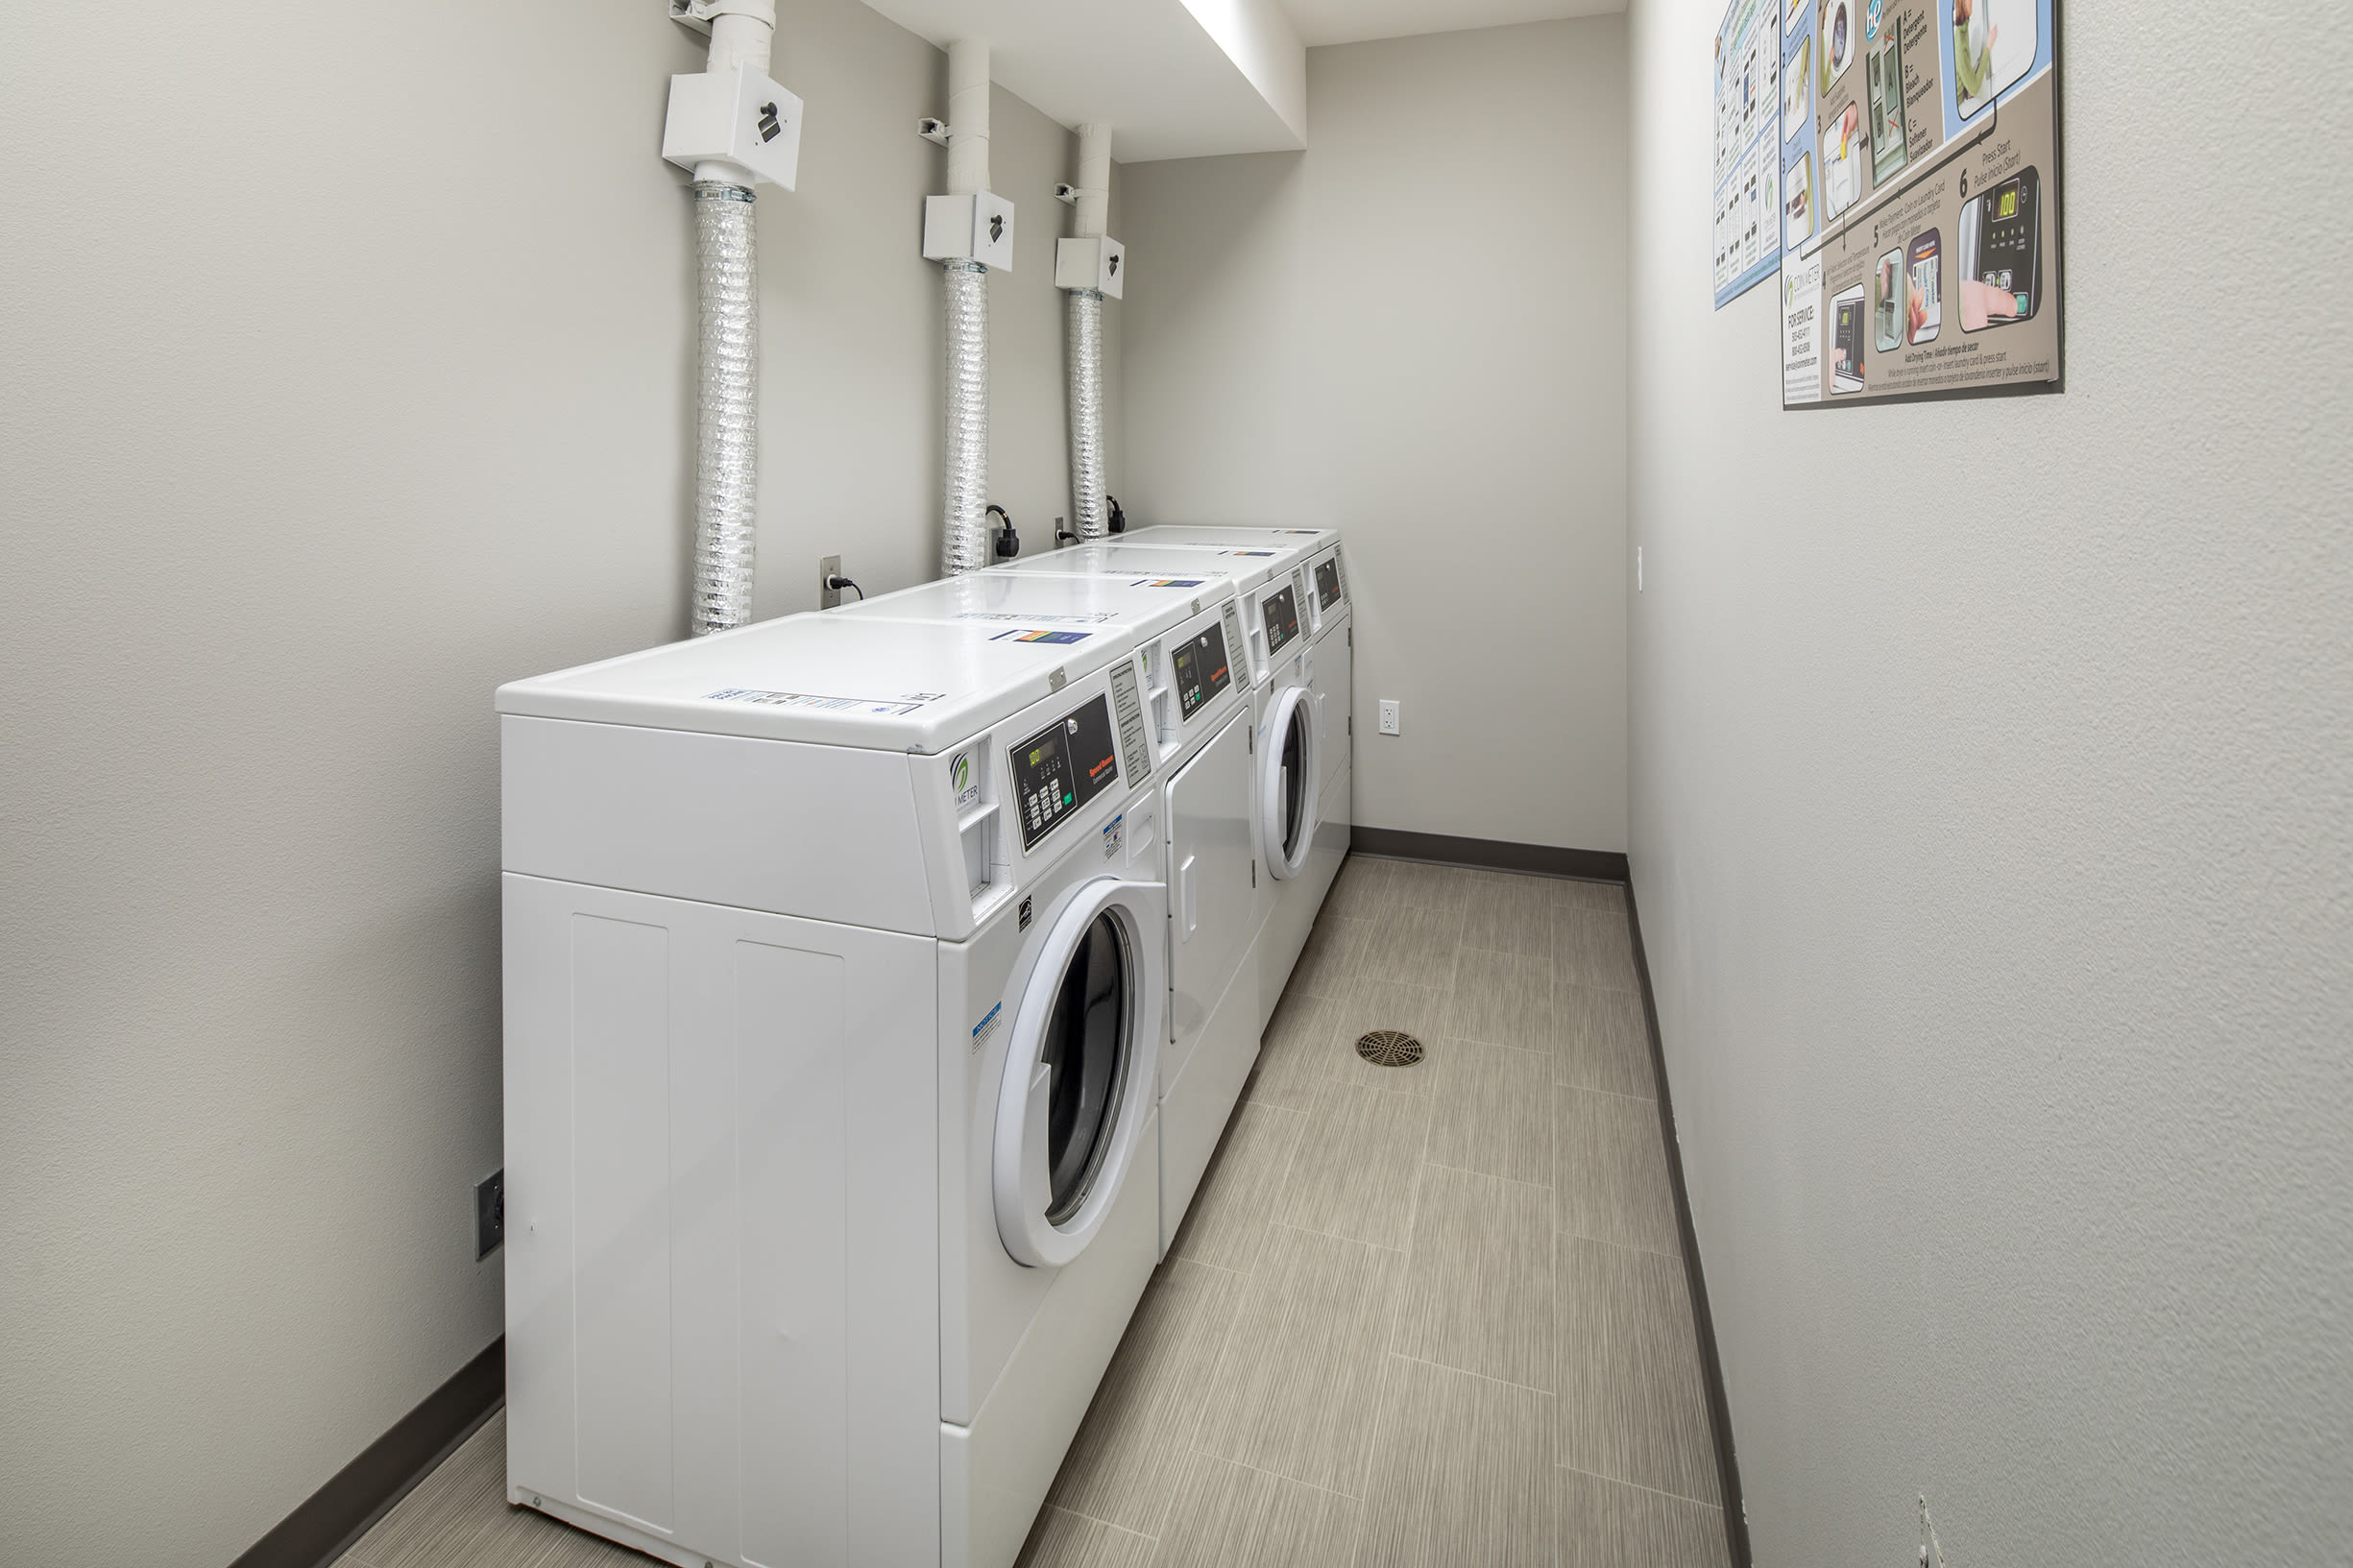 Laundry machines at Ascend in Portland, OR